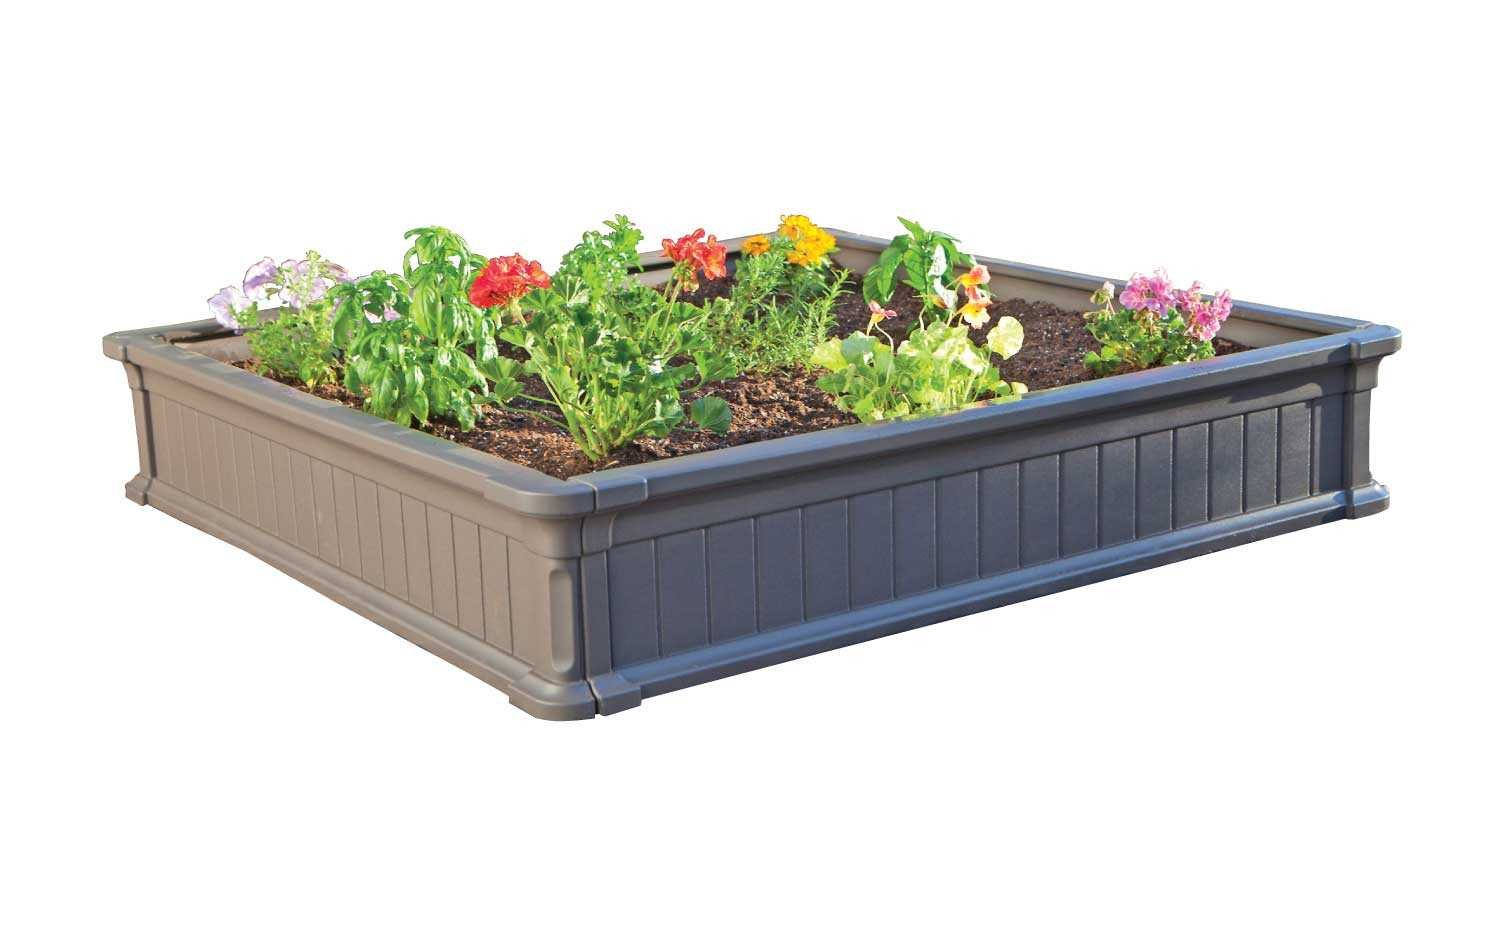 Amazon.com : Lifetime 60069 Raised Garden Bed Kit, 4 By 4 Feet, Pack Of 3 :  Garden Border Edging : Garden U0026 Outdoor